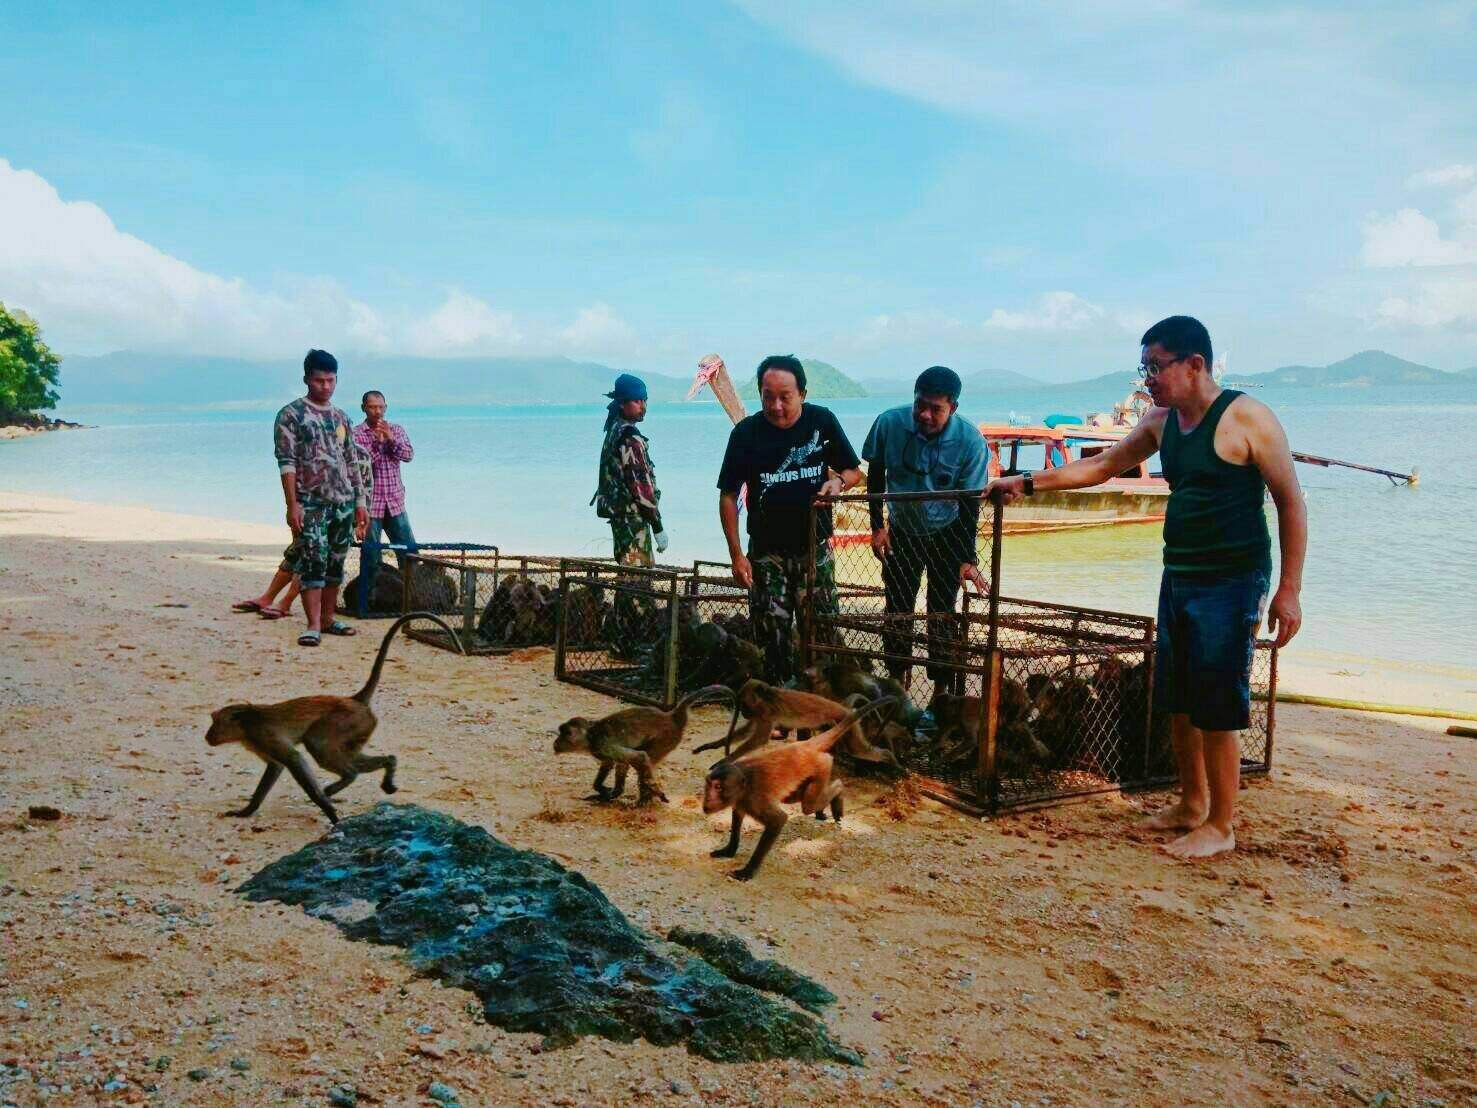 Monkeys released at Koh Payu – video and photos | The Thaiger